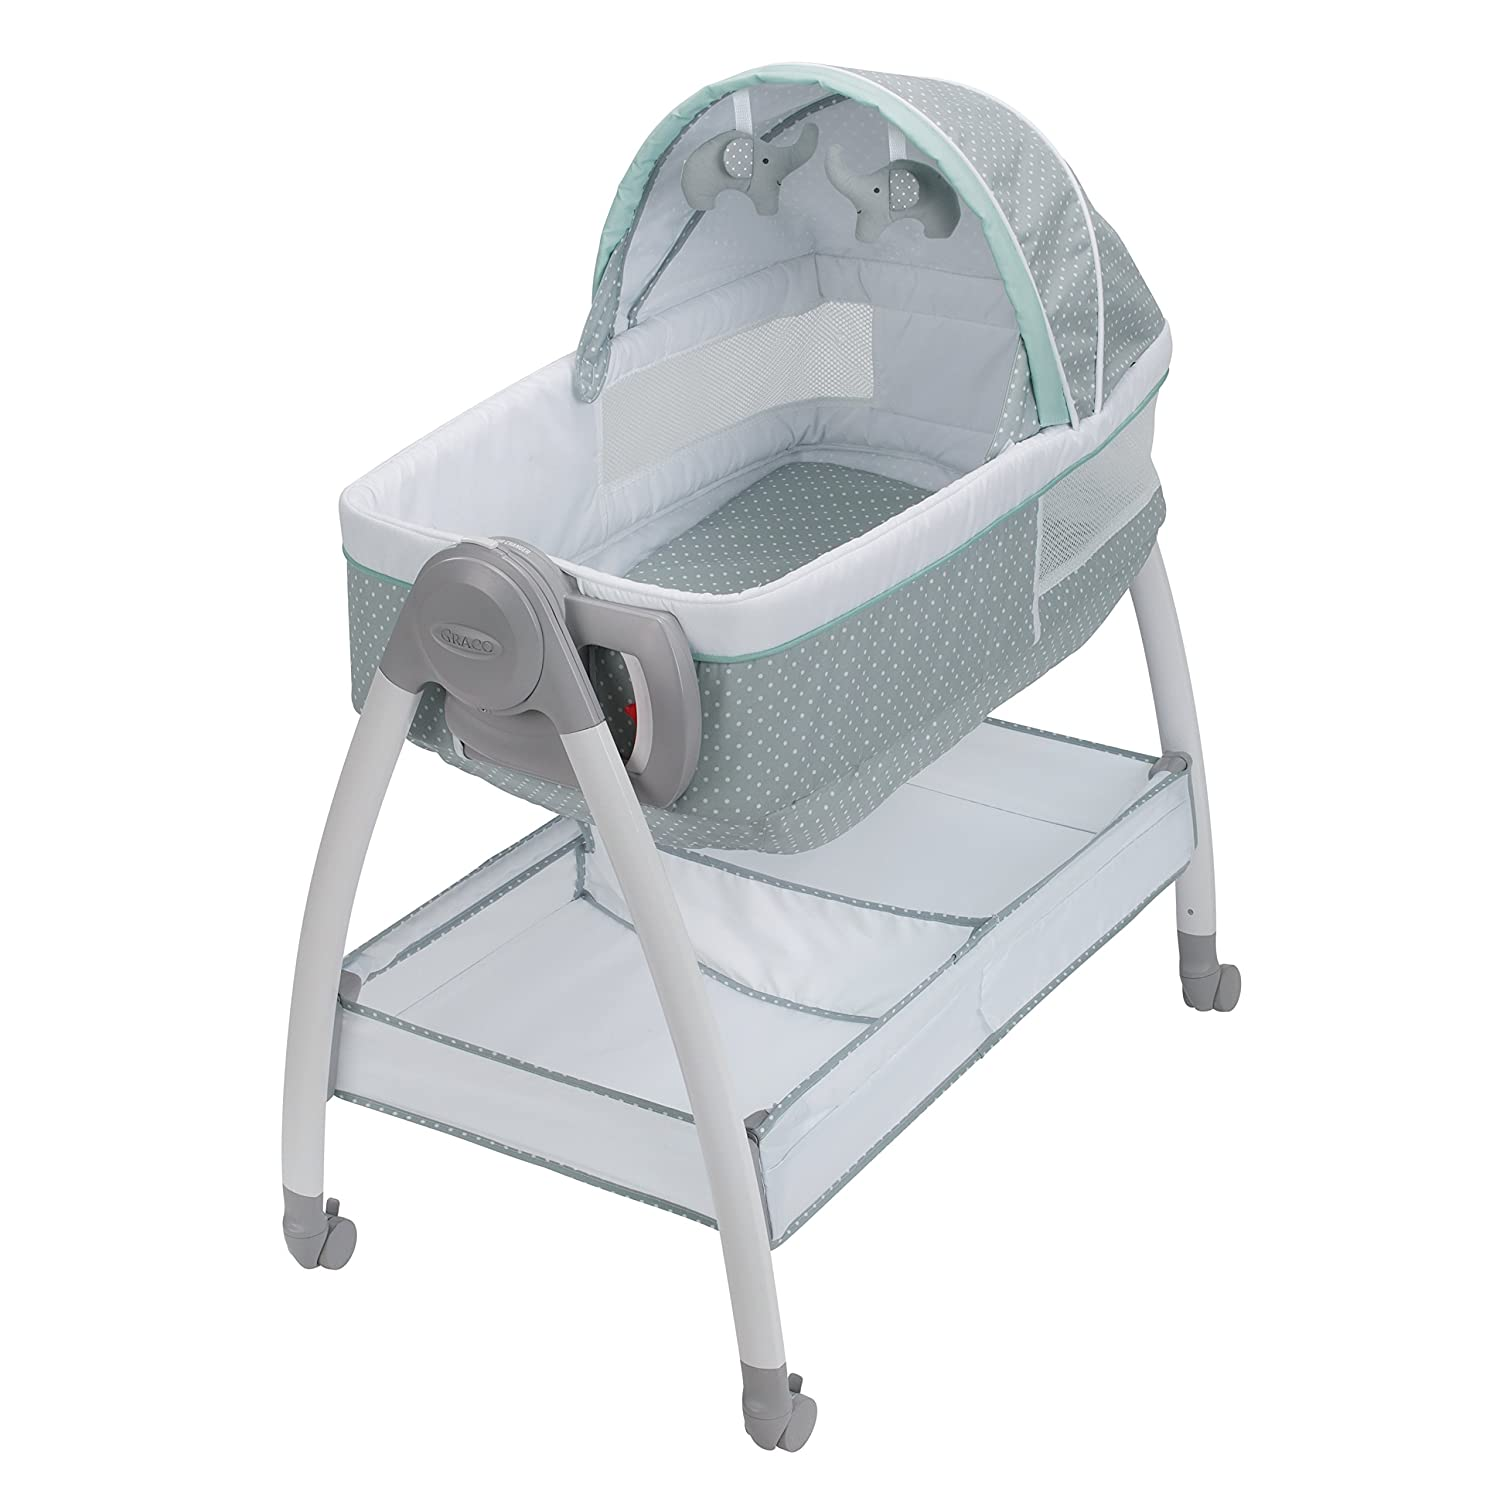 Graco Dream Suite Bassinet - Lullaby, Lullaby 2013968